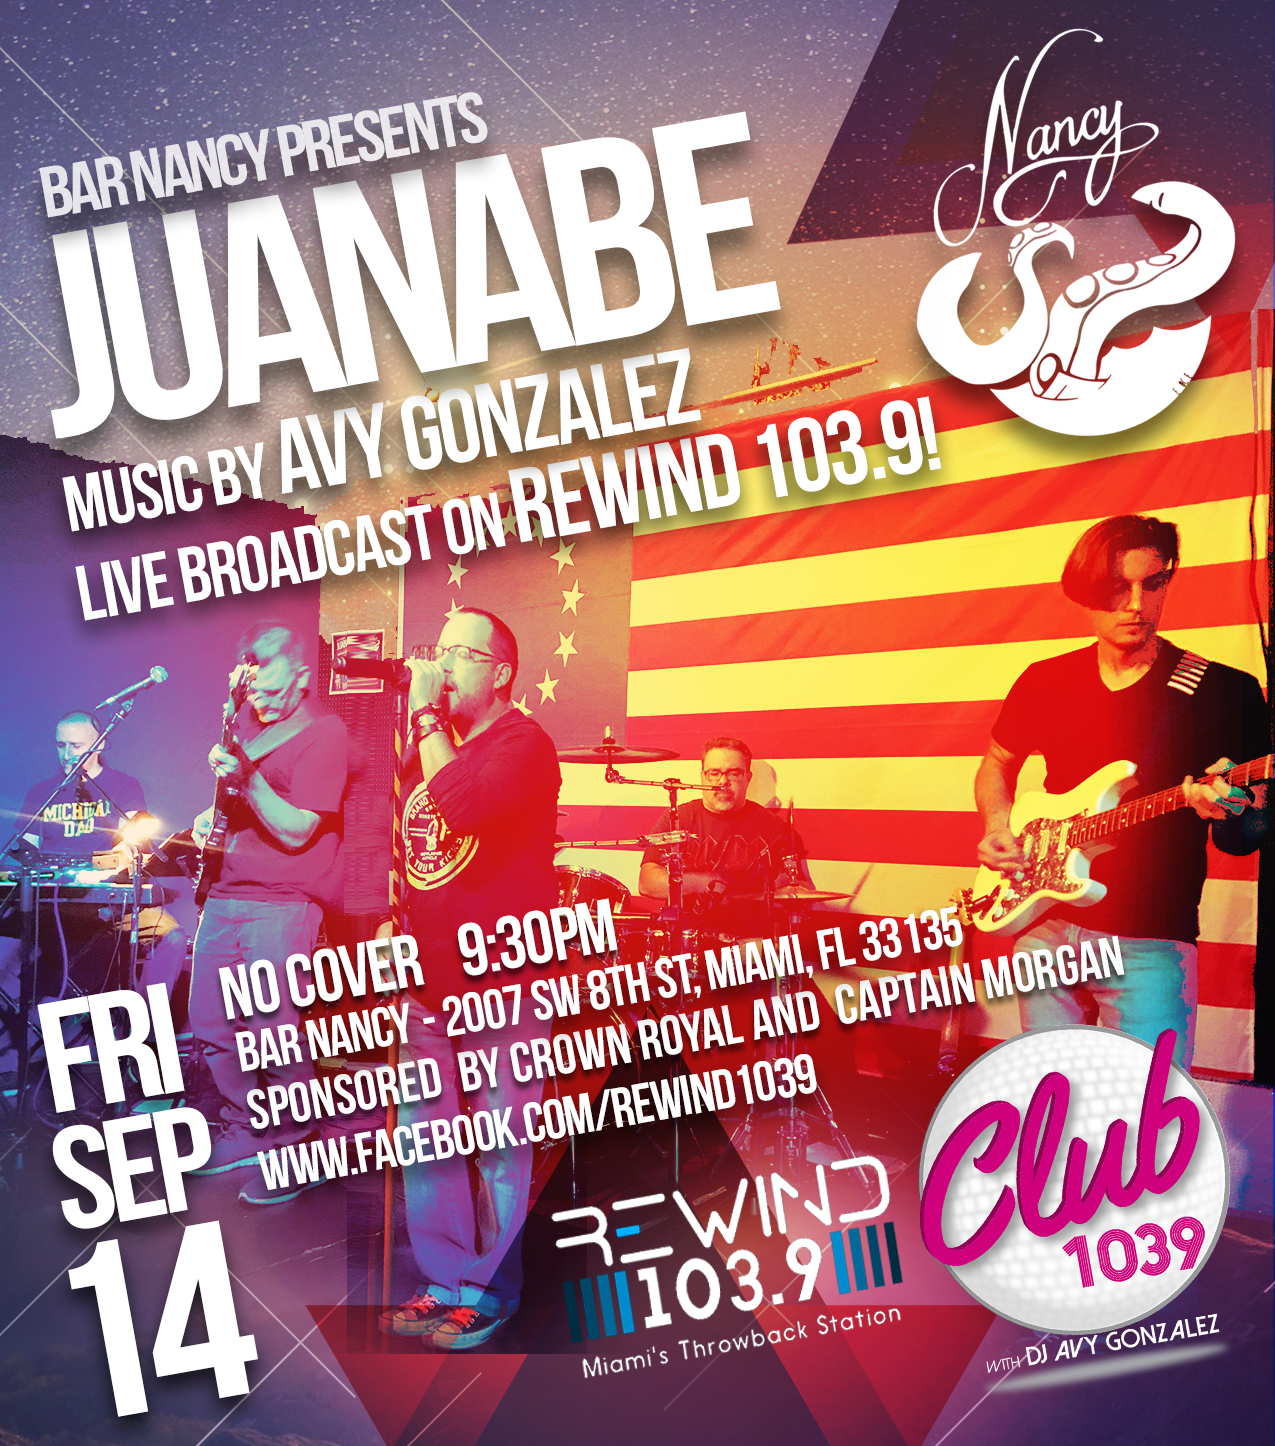 JUANABE AT BAR NANCY - DJ AVY GONZALEZ - 9:30 PM - NO COVER Broadcasting LIVE on Rewind 103.9!!!